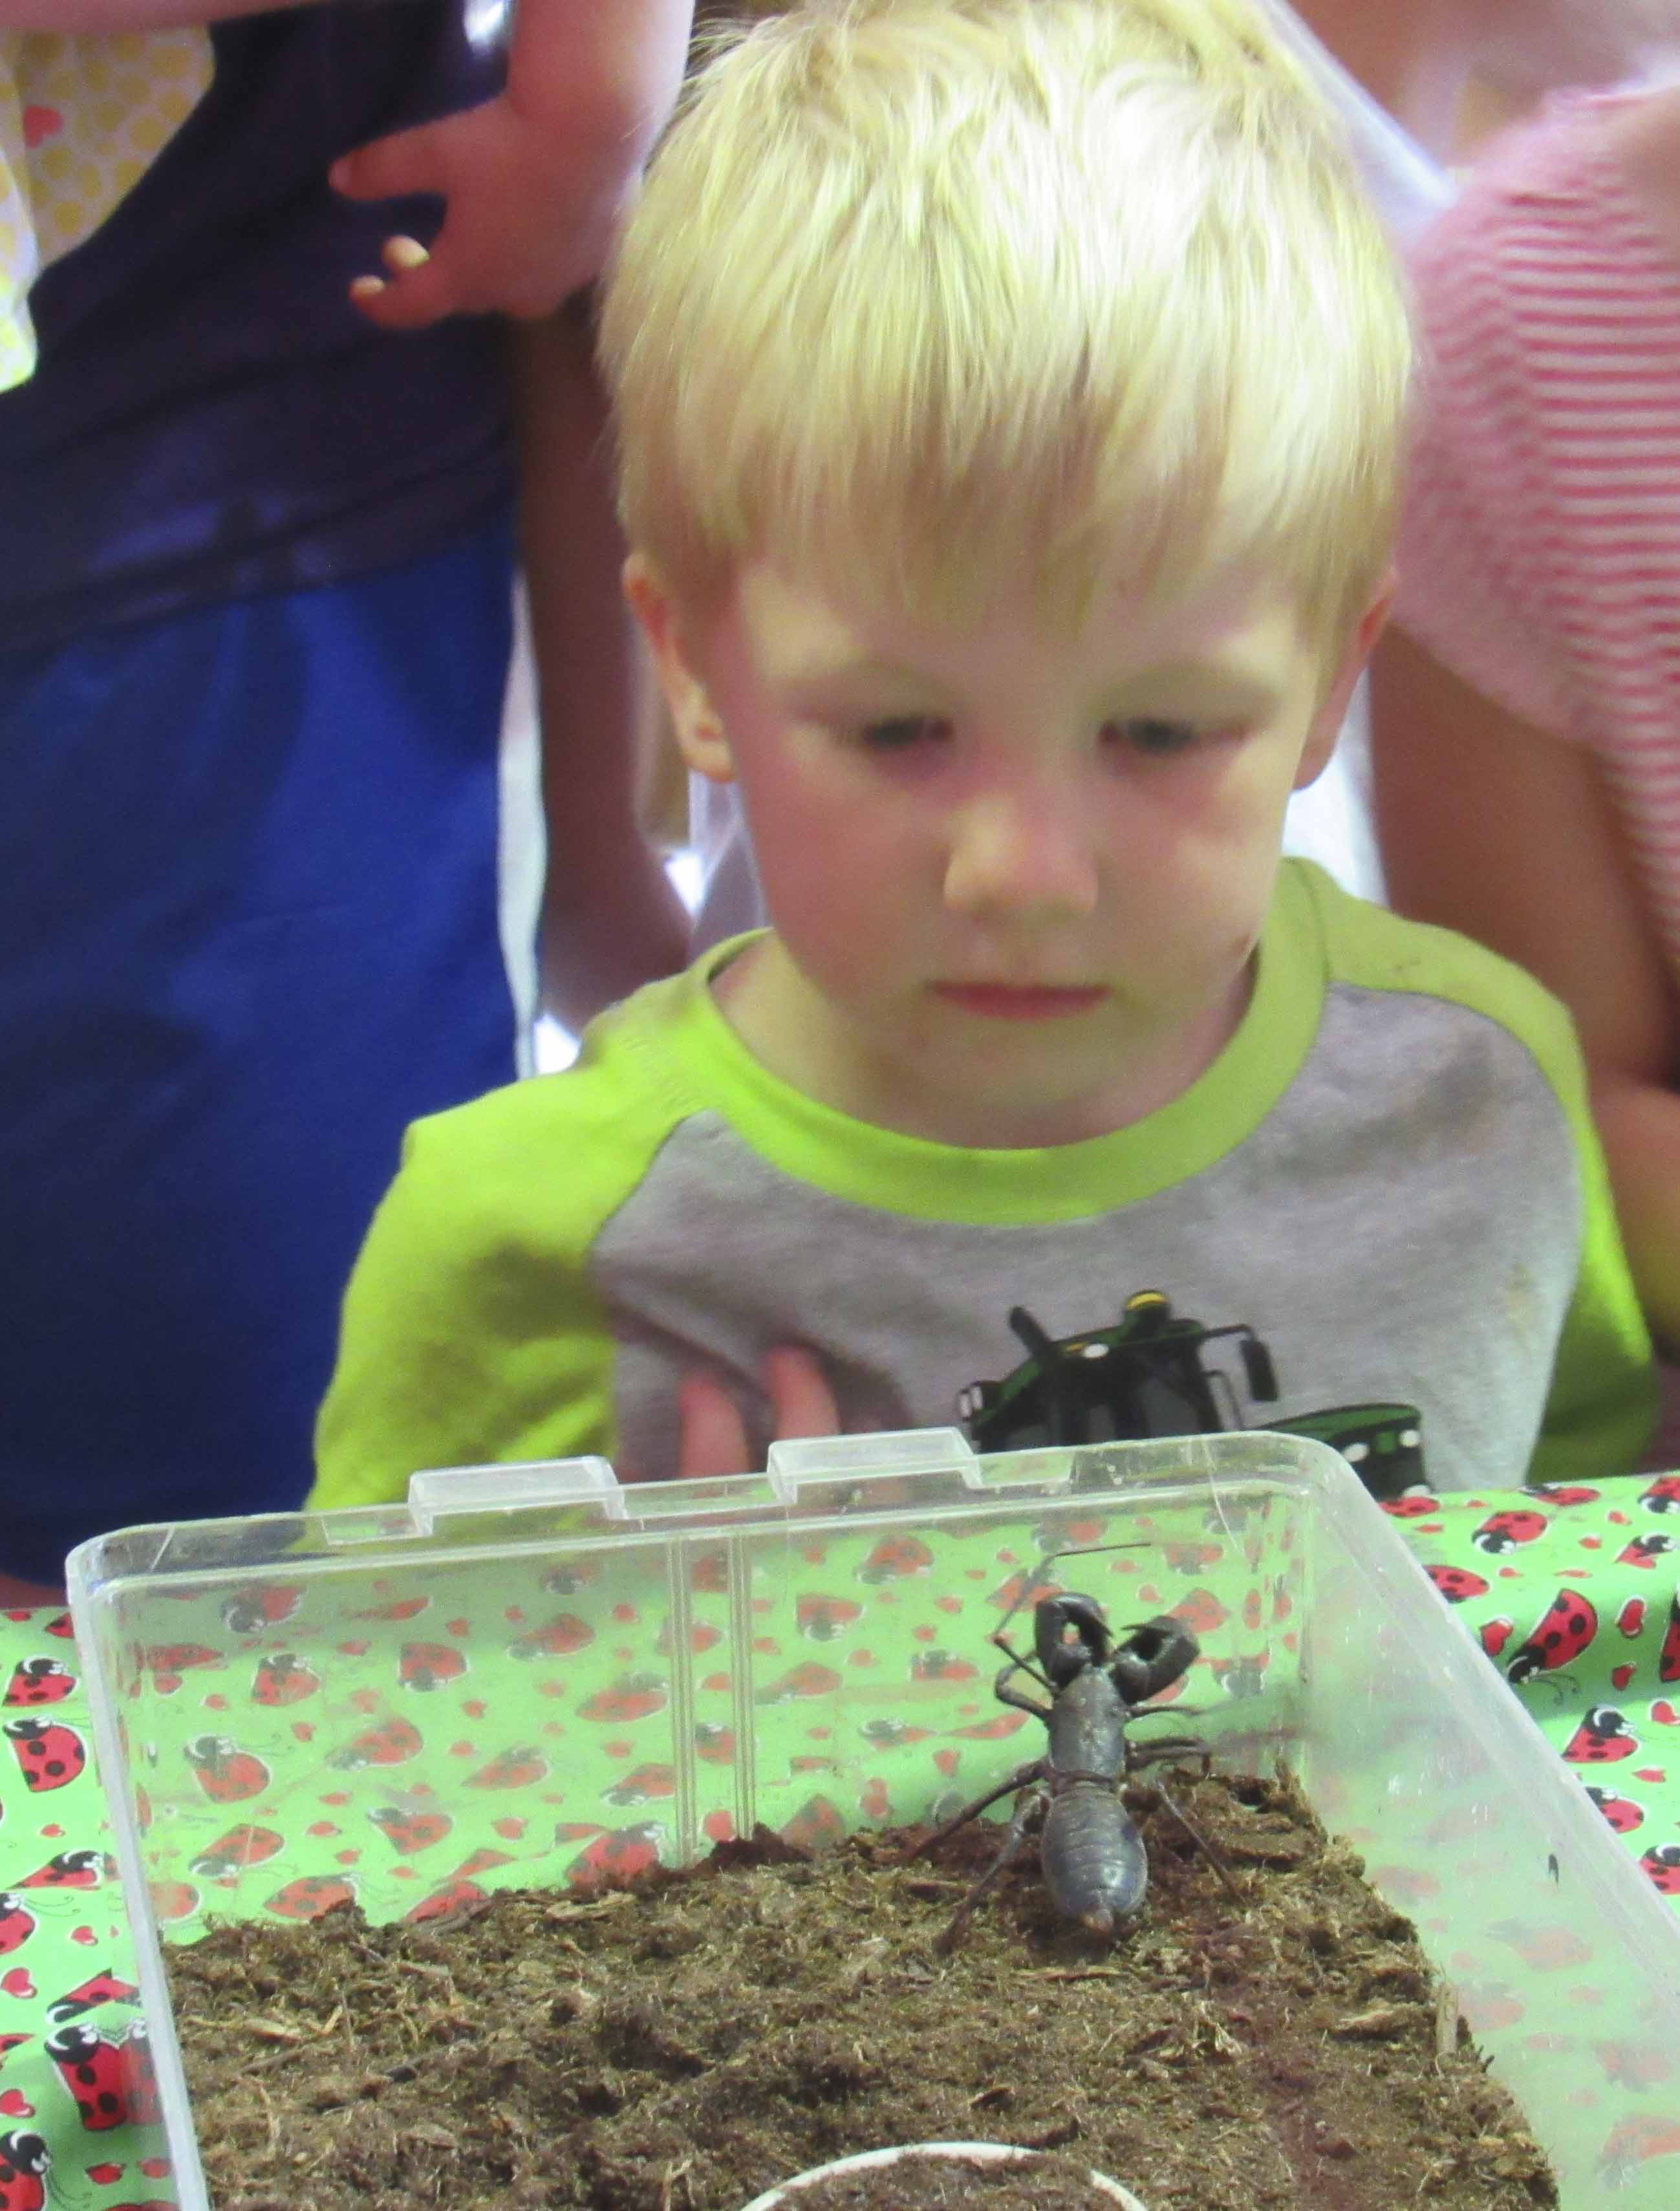 Iowa State University visited the Monticello Public Library on June 13 with their insect zoo, as part of the Summer Reading Program. Owen Russell cautiously looks at a scorpion.